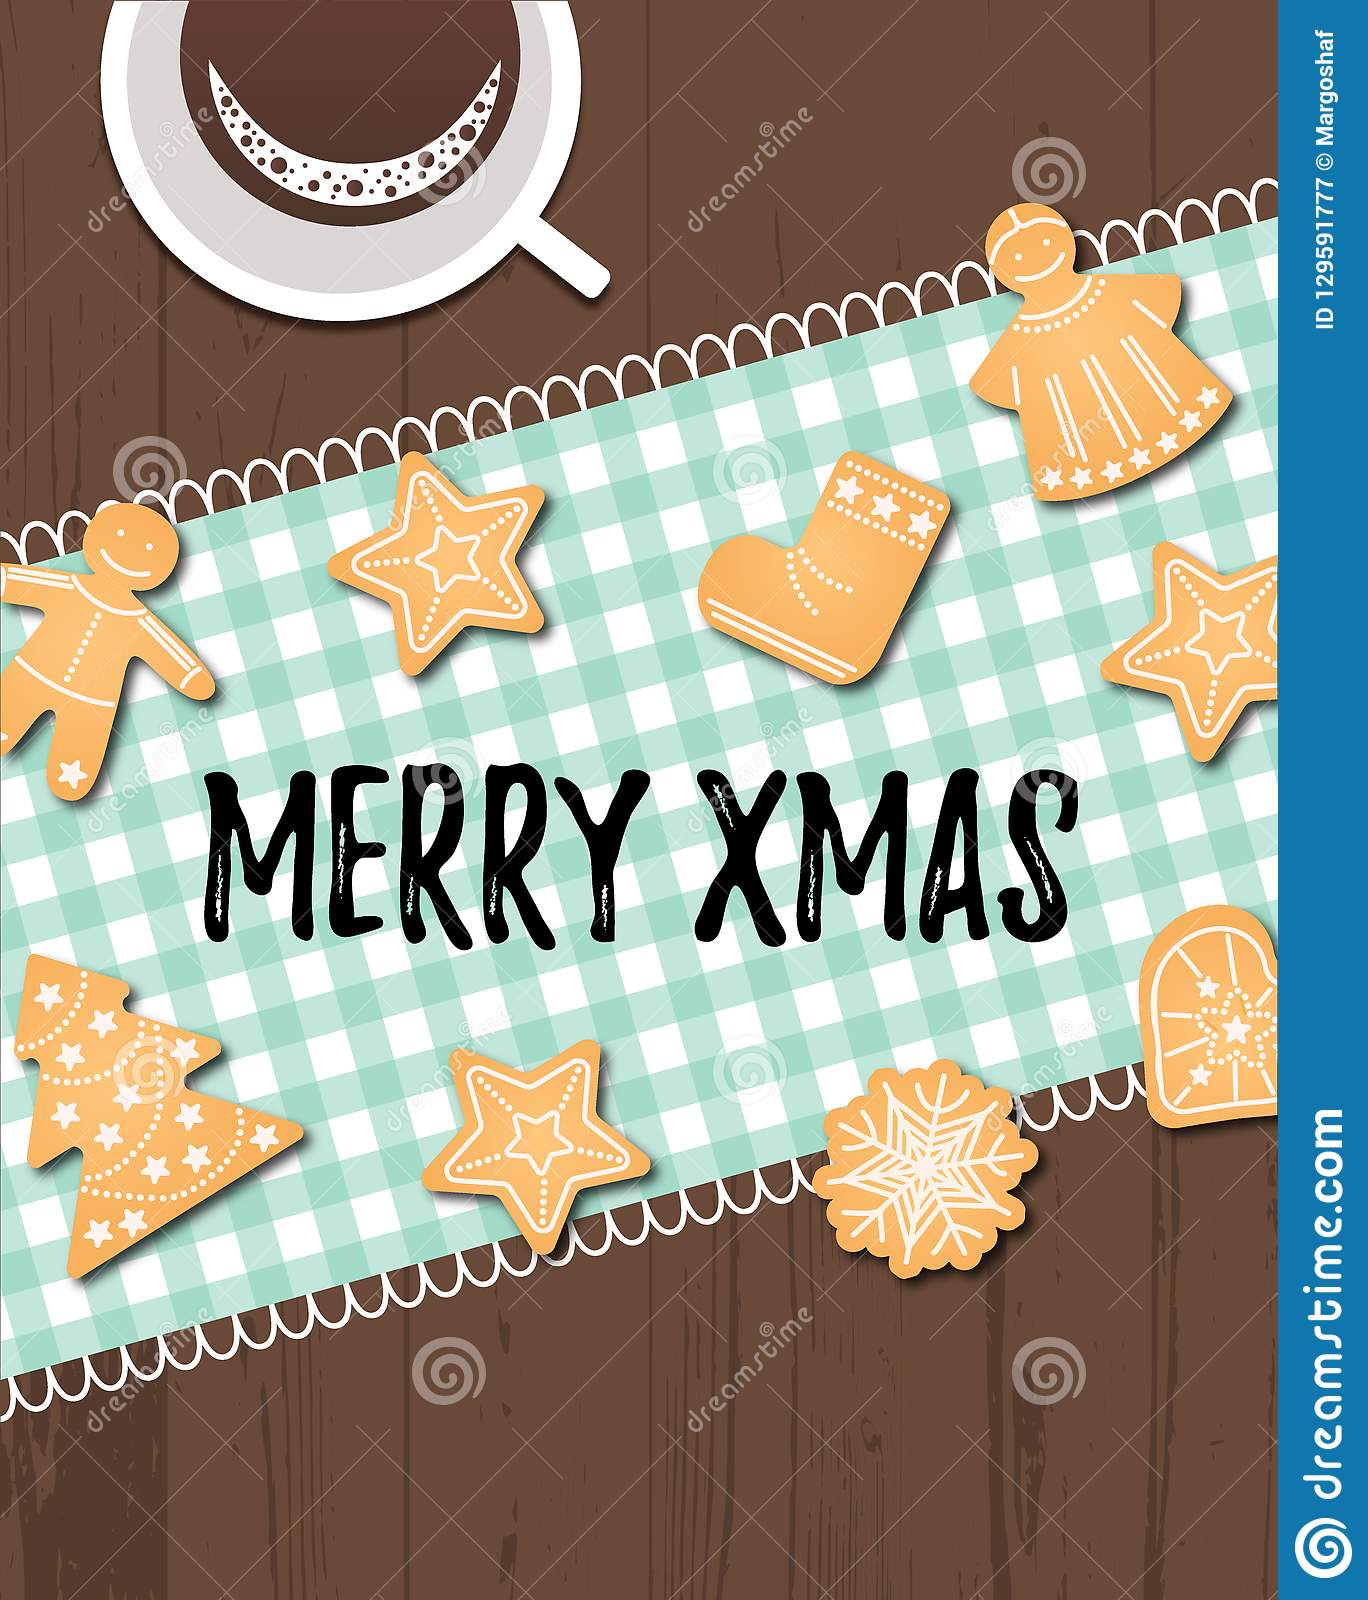 Merry Xmas text with winter holidays traditional cookies.